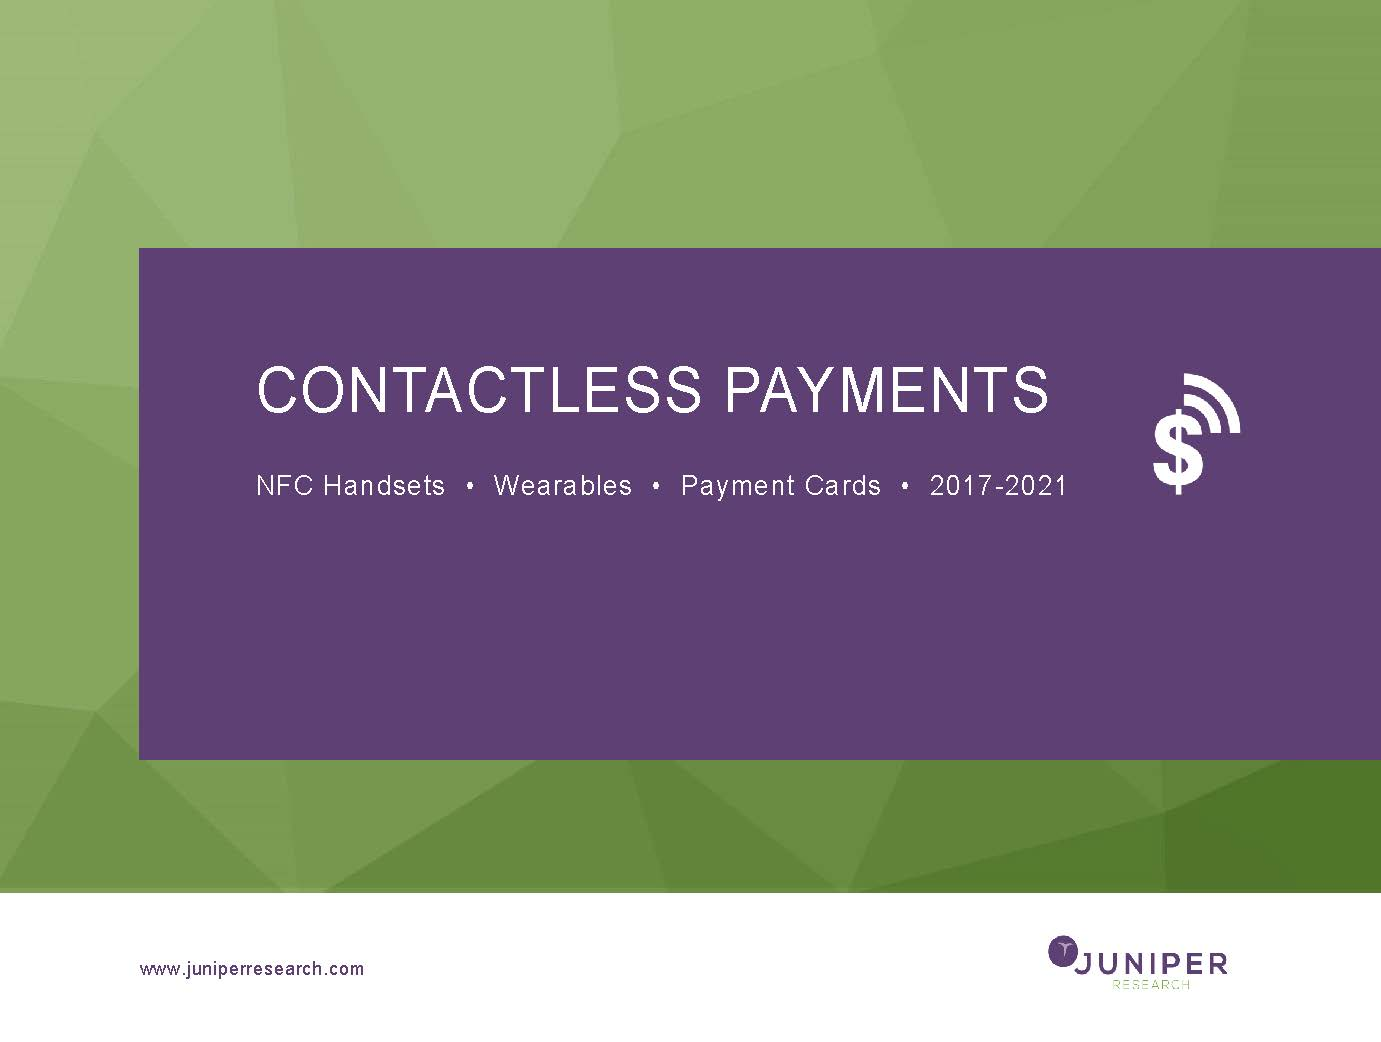 Contactless Payments - Q4 2017